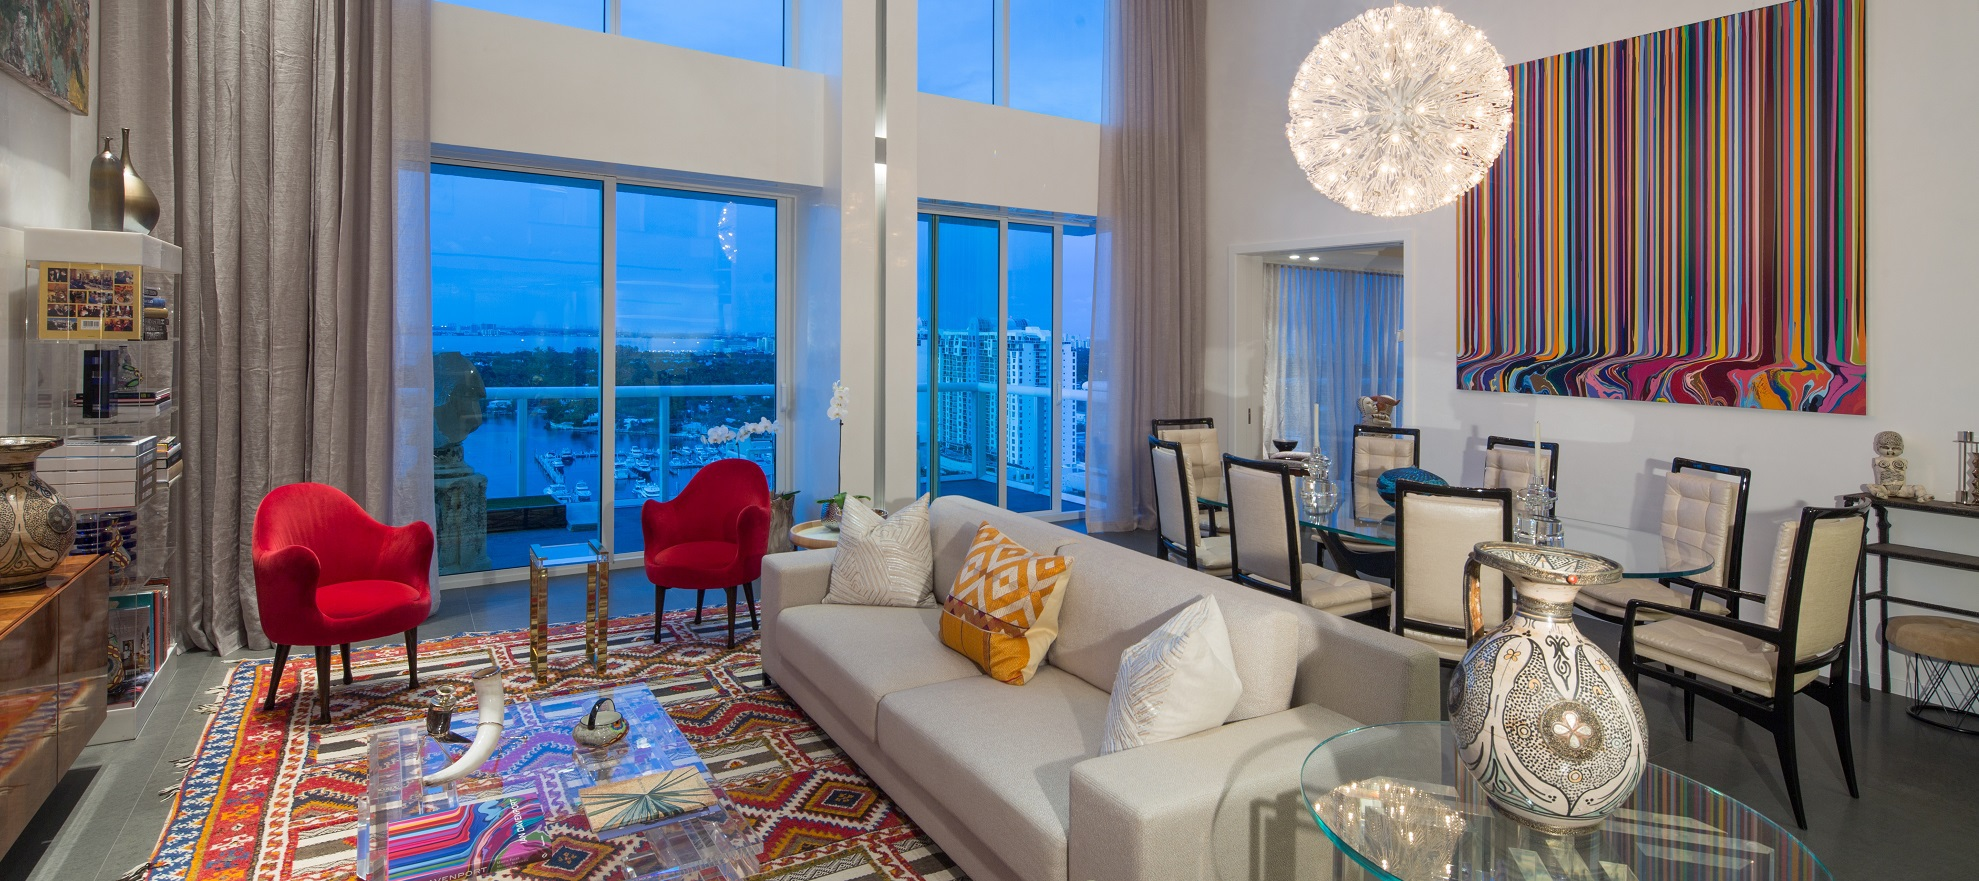 Luxury listing: Modern penthouse with sweeping views